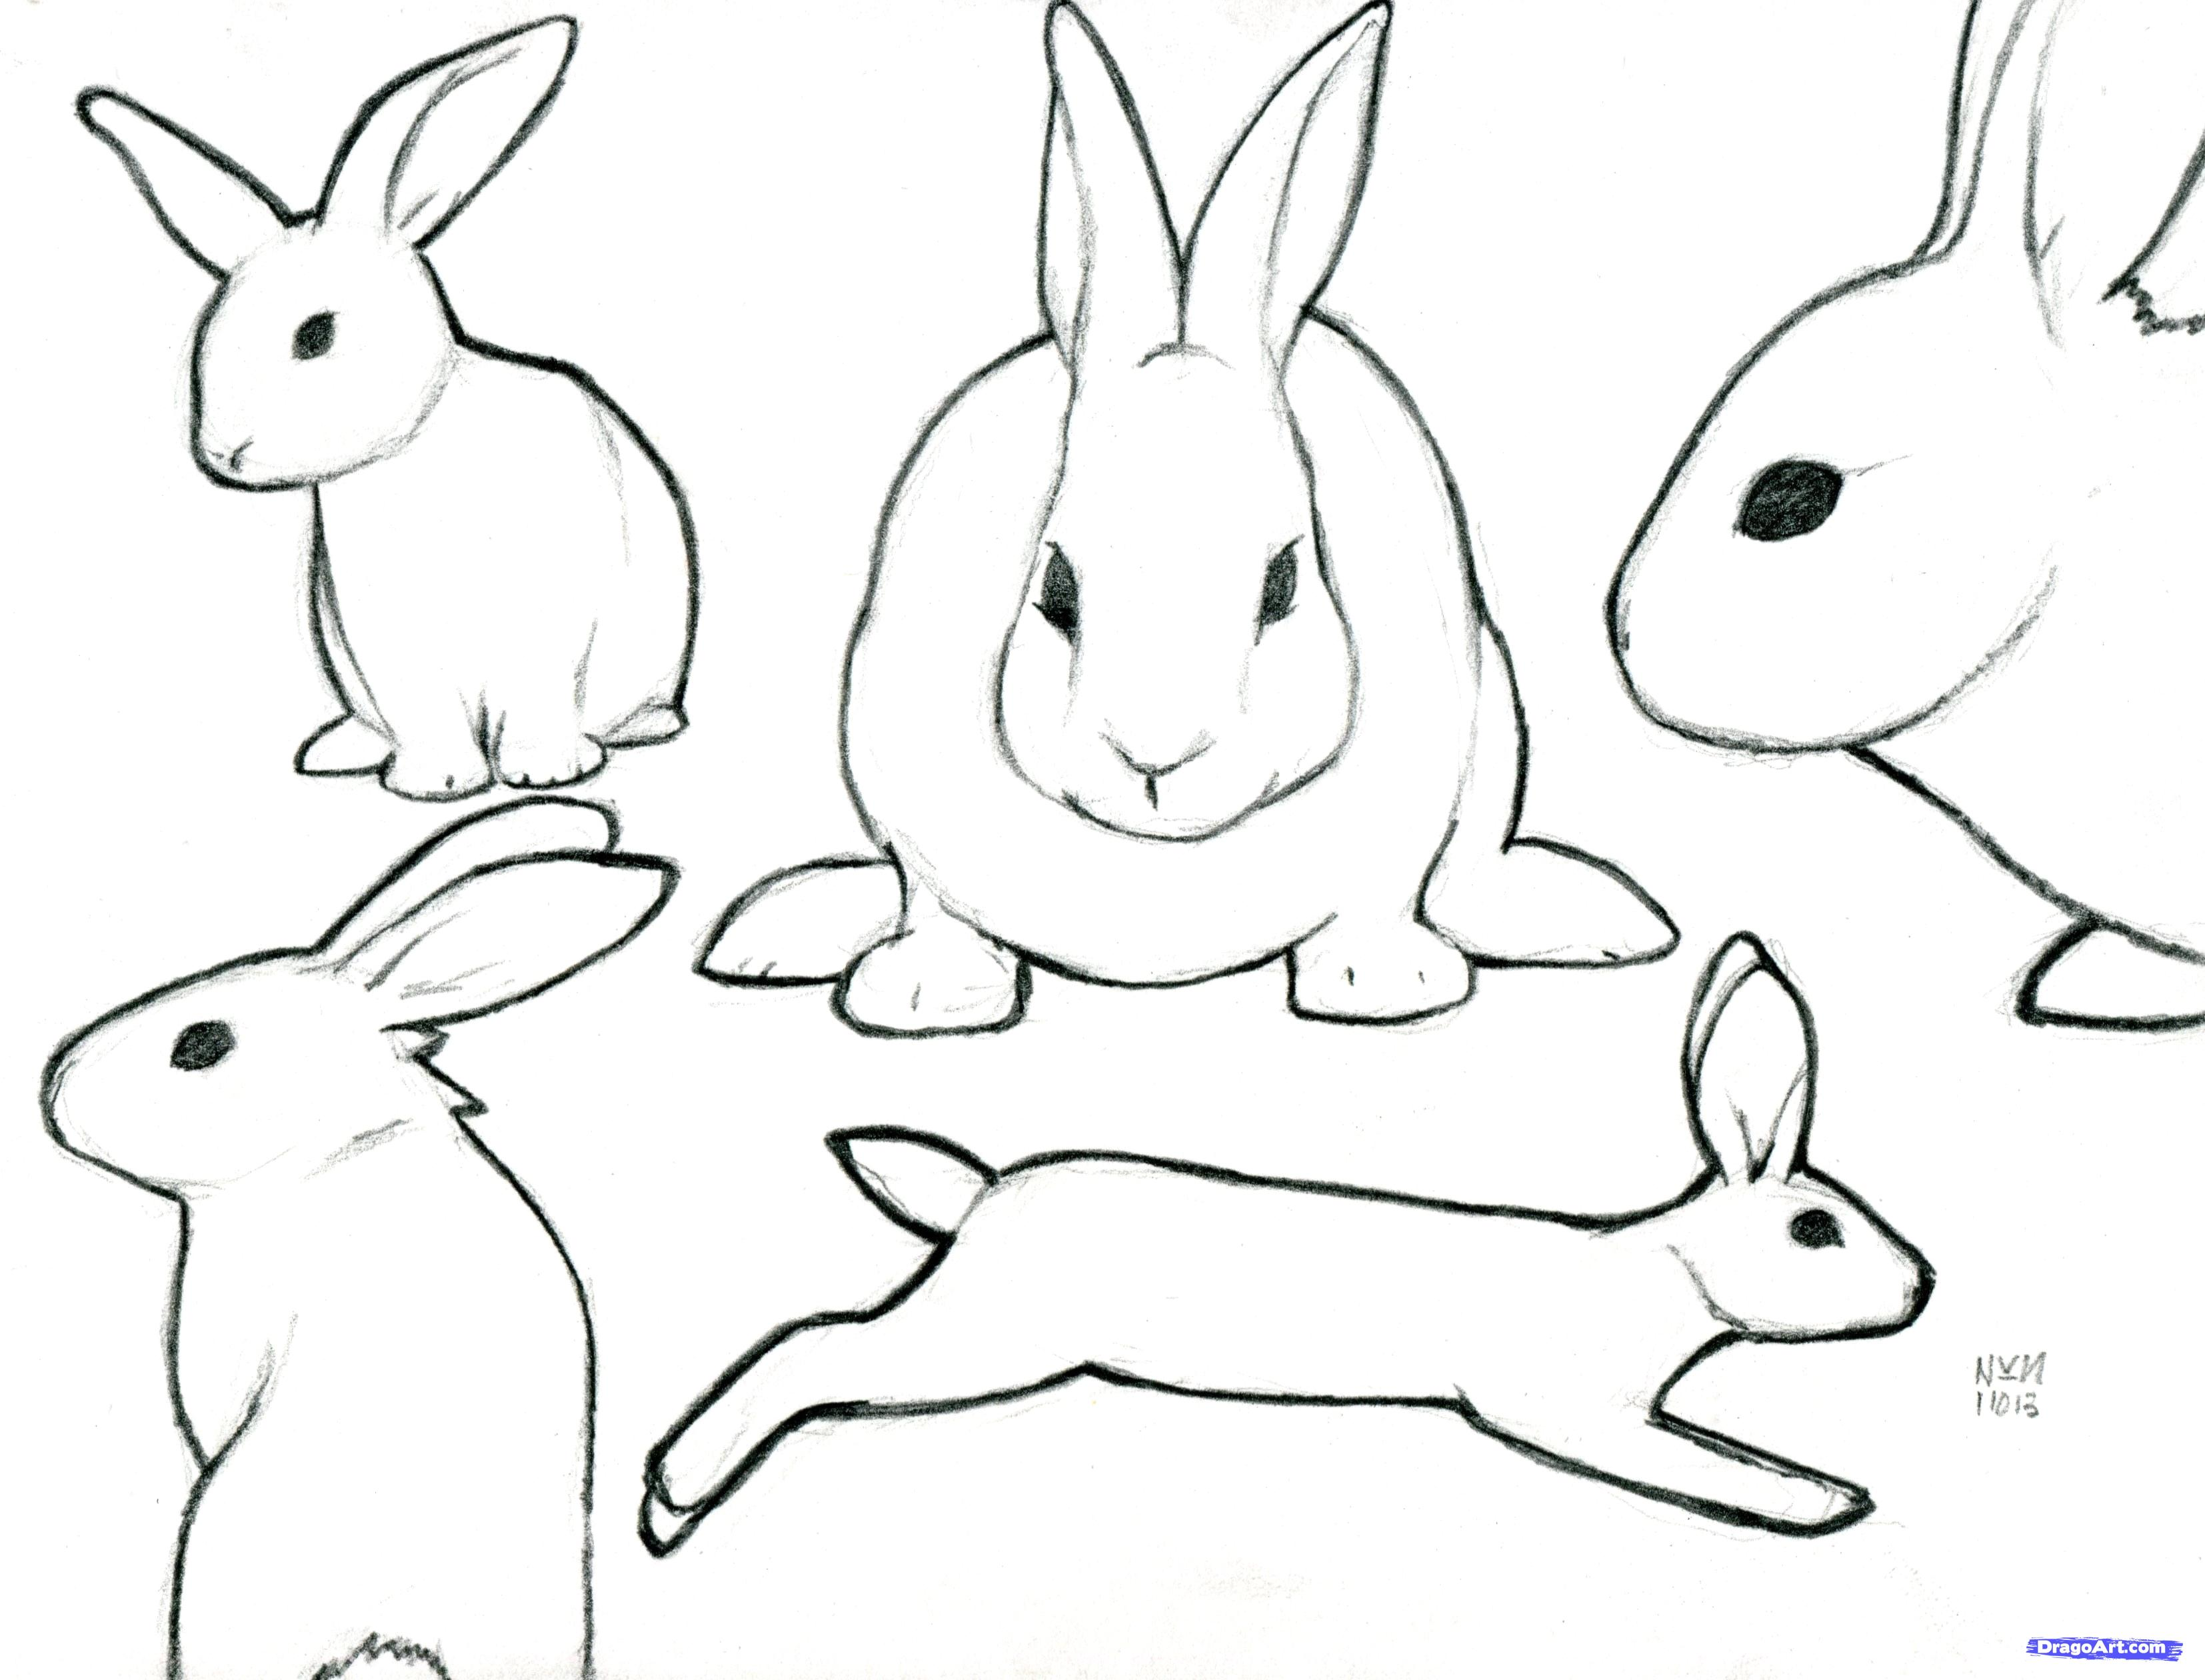 Drawn rabbit sketch Sketch Rabbit Rabbit photo#11 Sketch